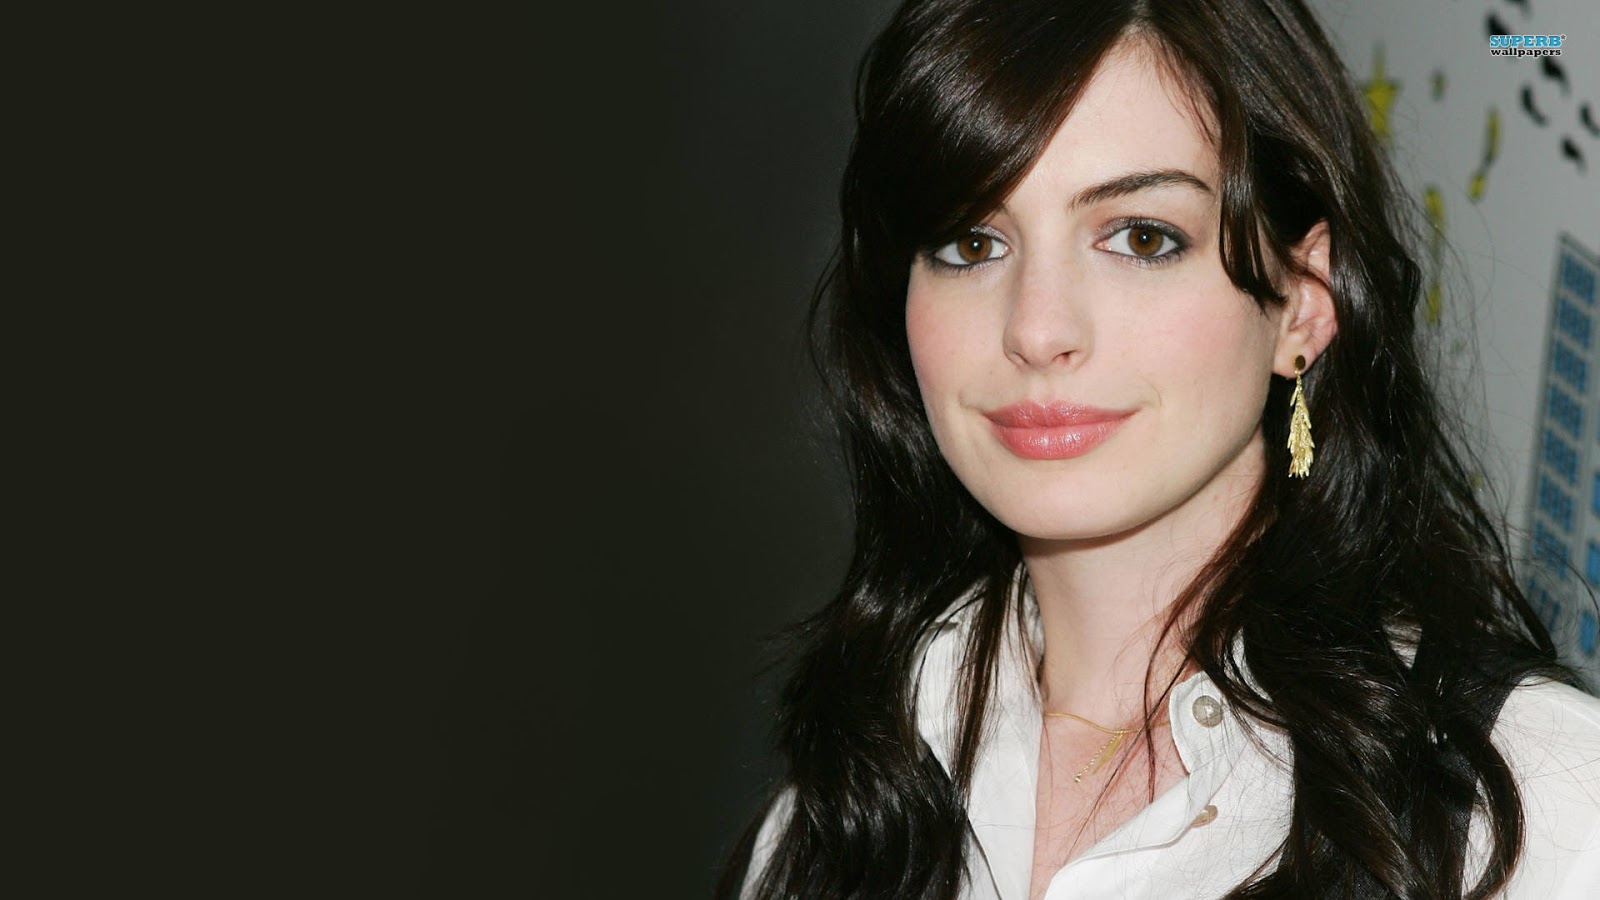 Anne Hathaway Hd Wallpapers   HD Wallpapers